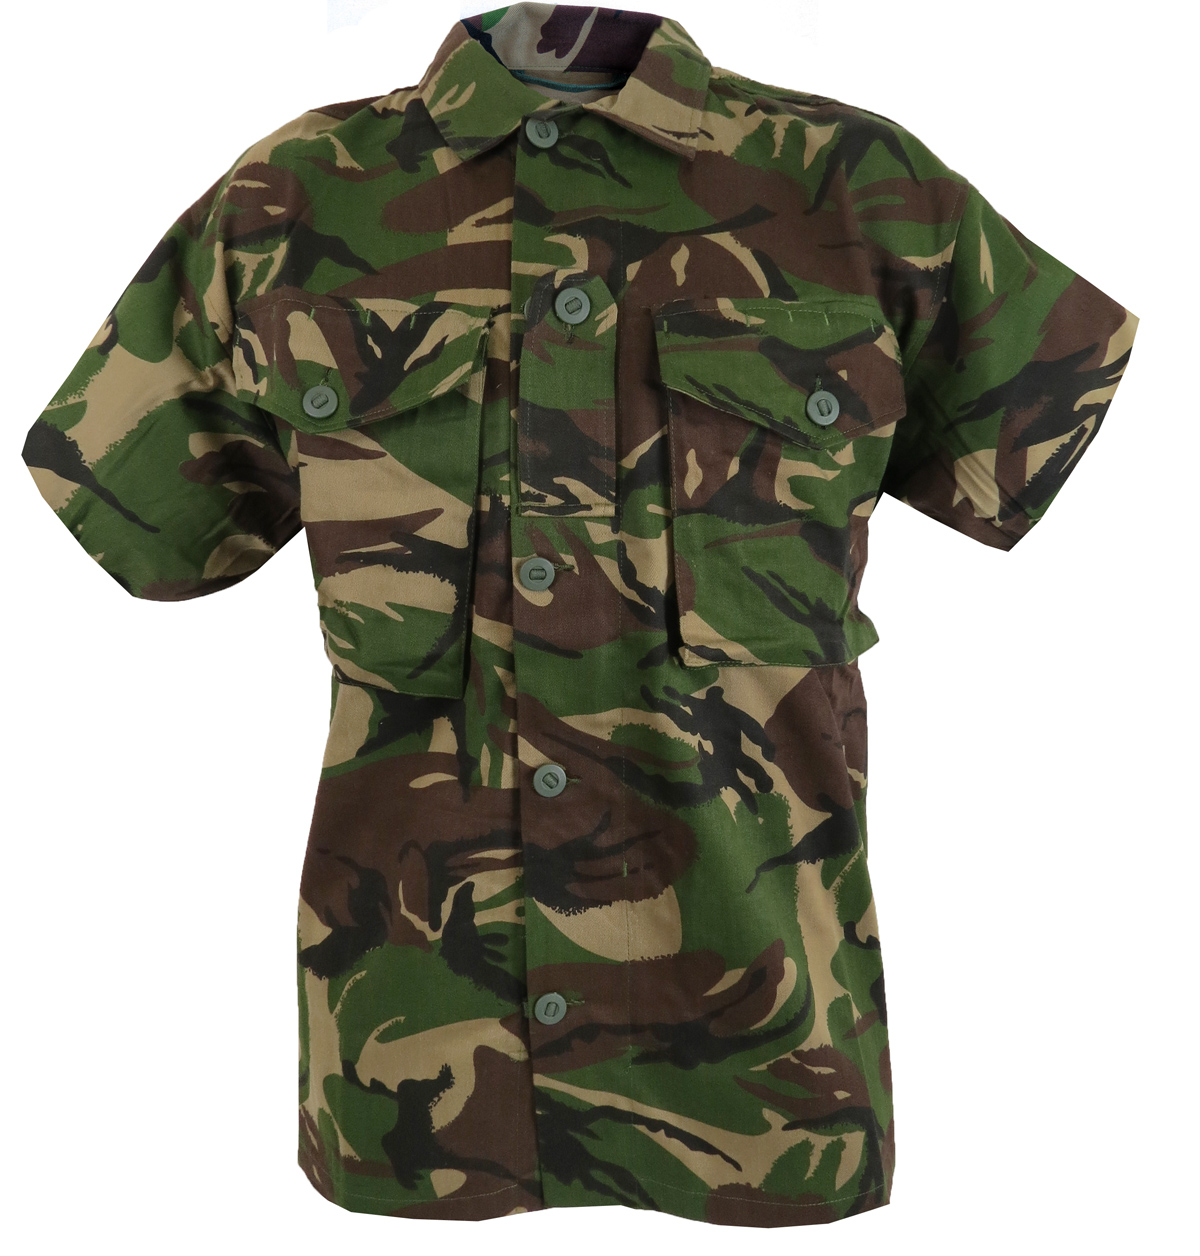 soldier 95 style camo army short sleeve shirt  british dpm